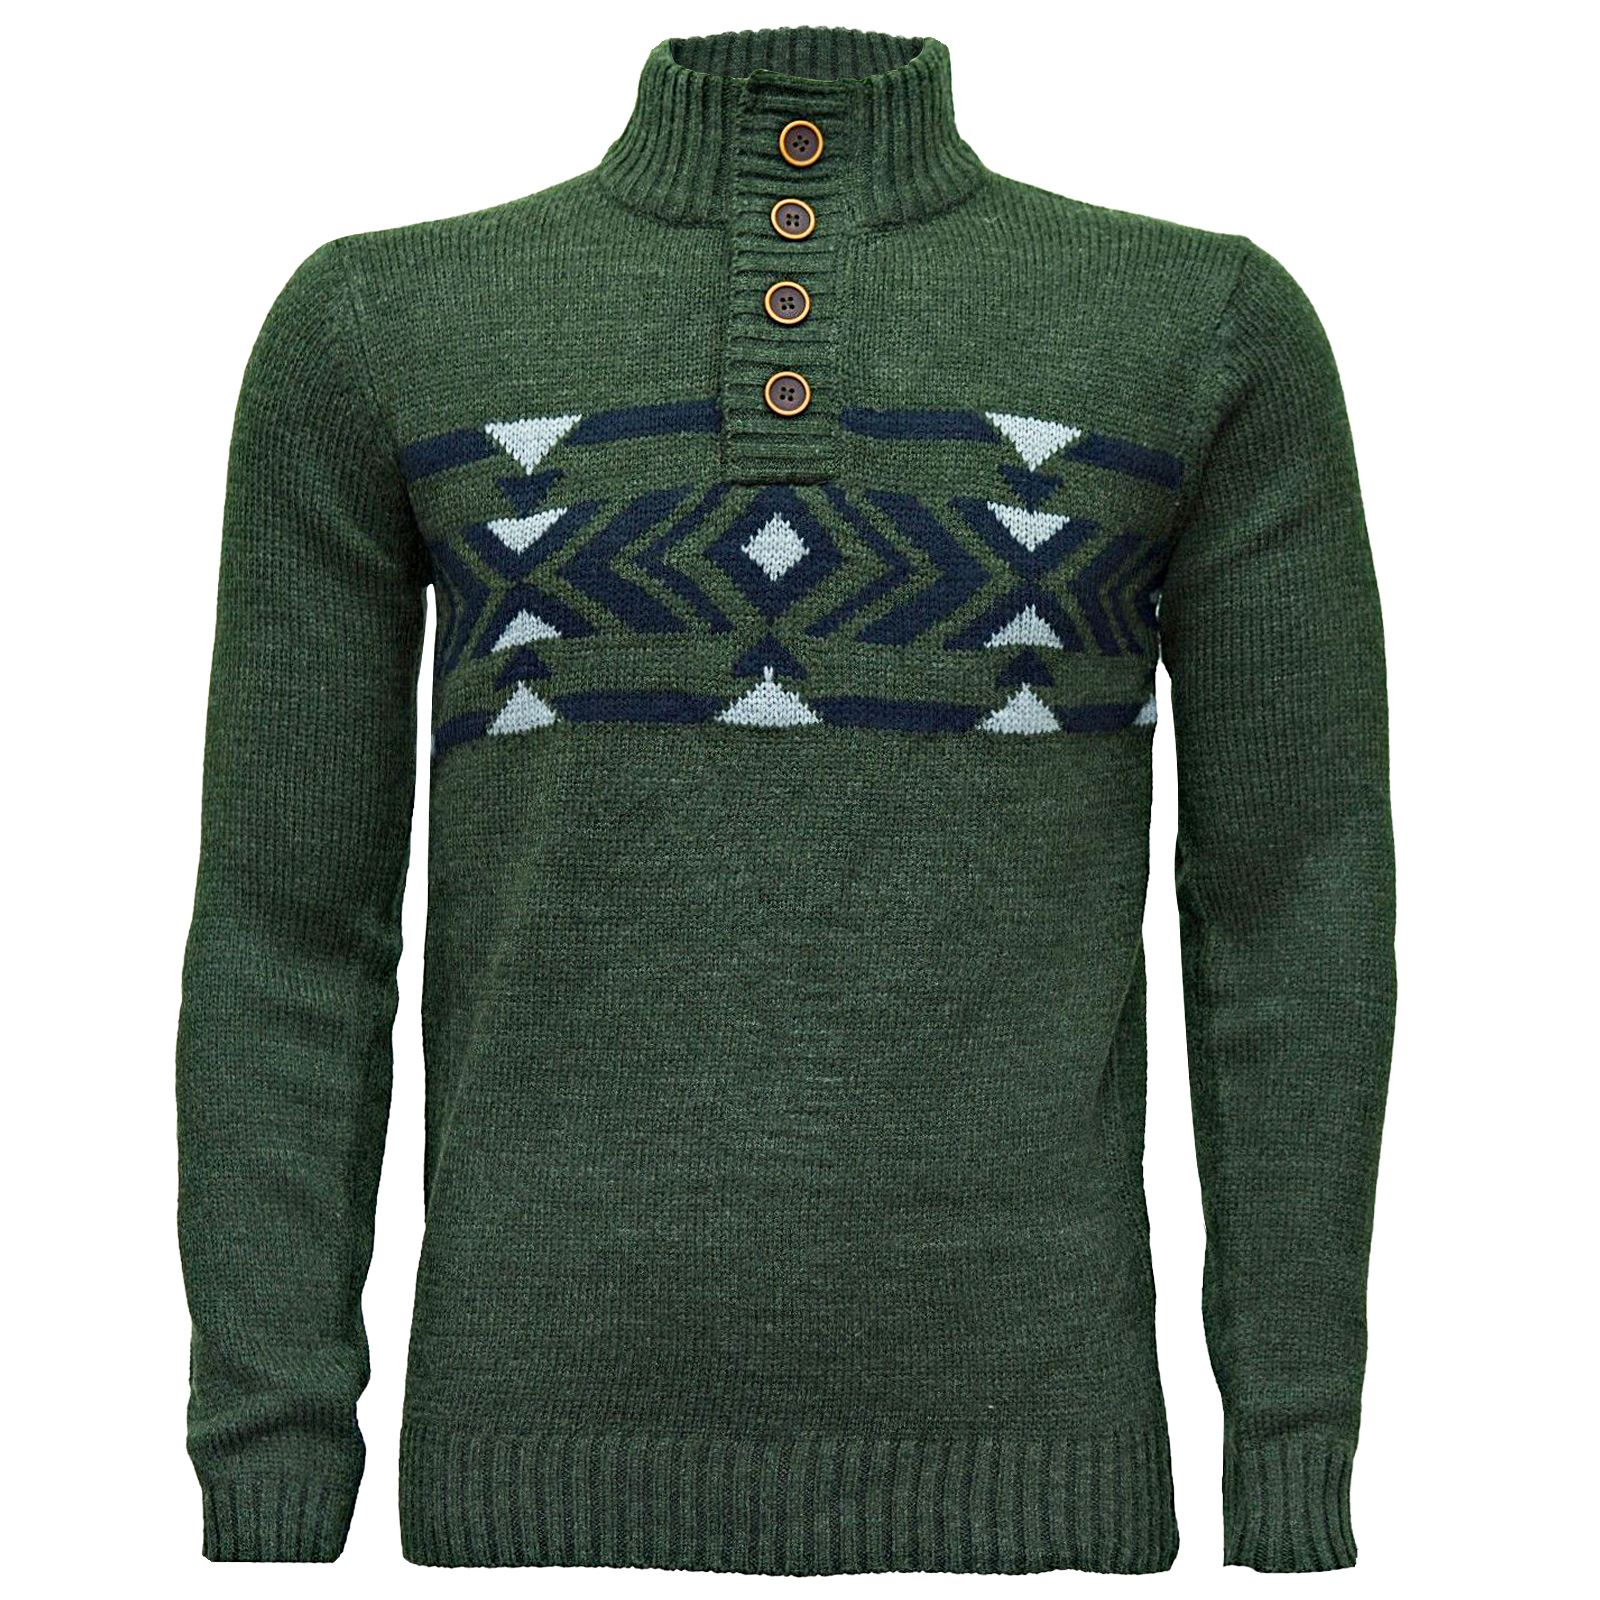 Mens Casual Winter Warm Knitwear Knitted Shawl High Neck Sweater ...